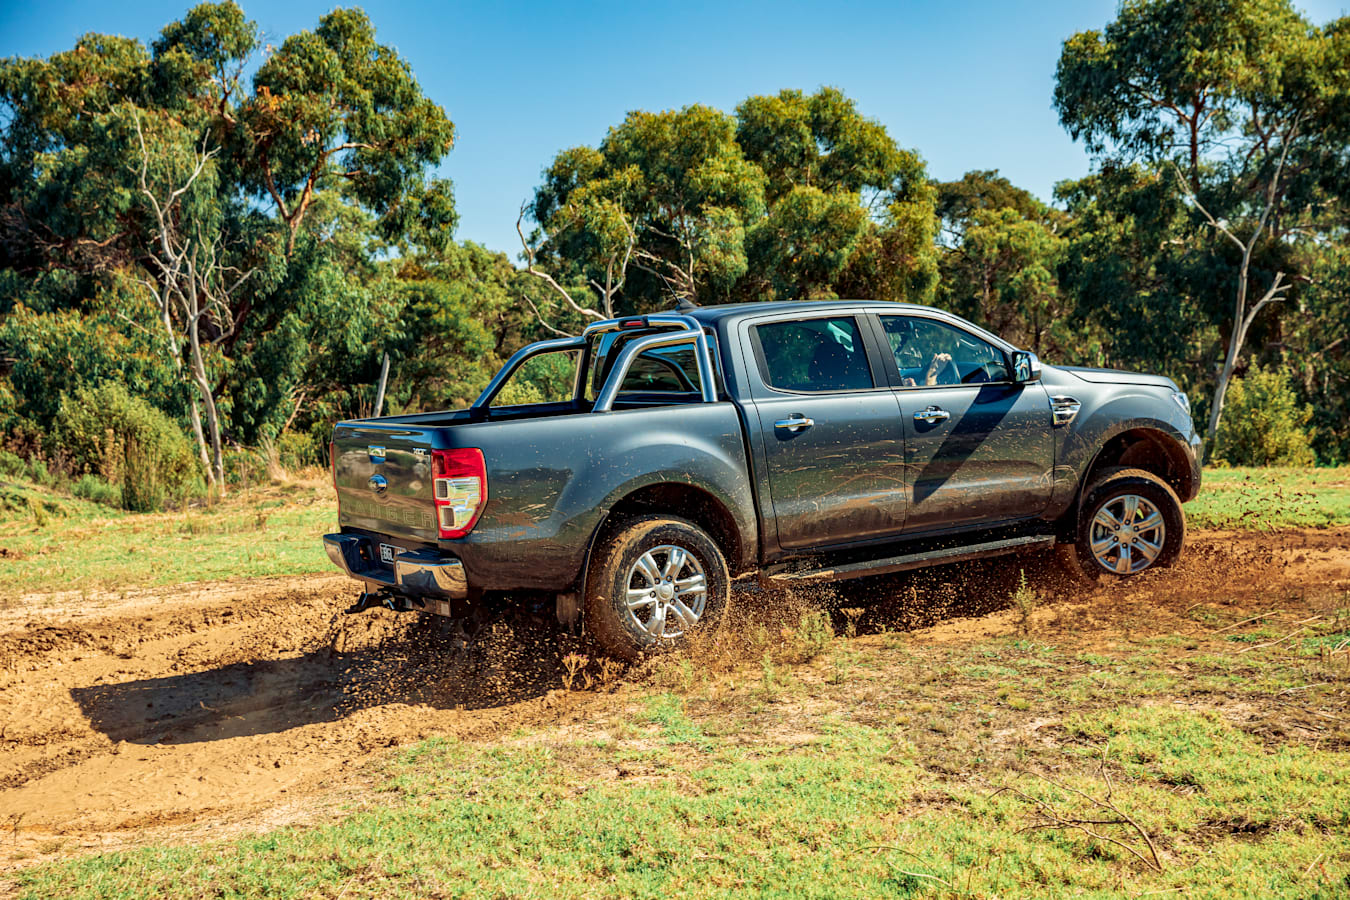 4 X 4 Australia Comparisons 2021 May 21 Ford Ranger XLT Off Road Ride Test